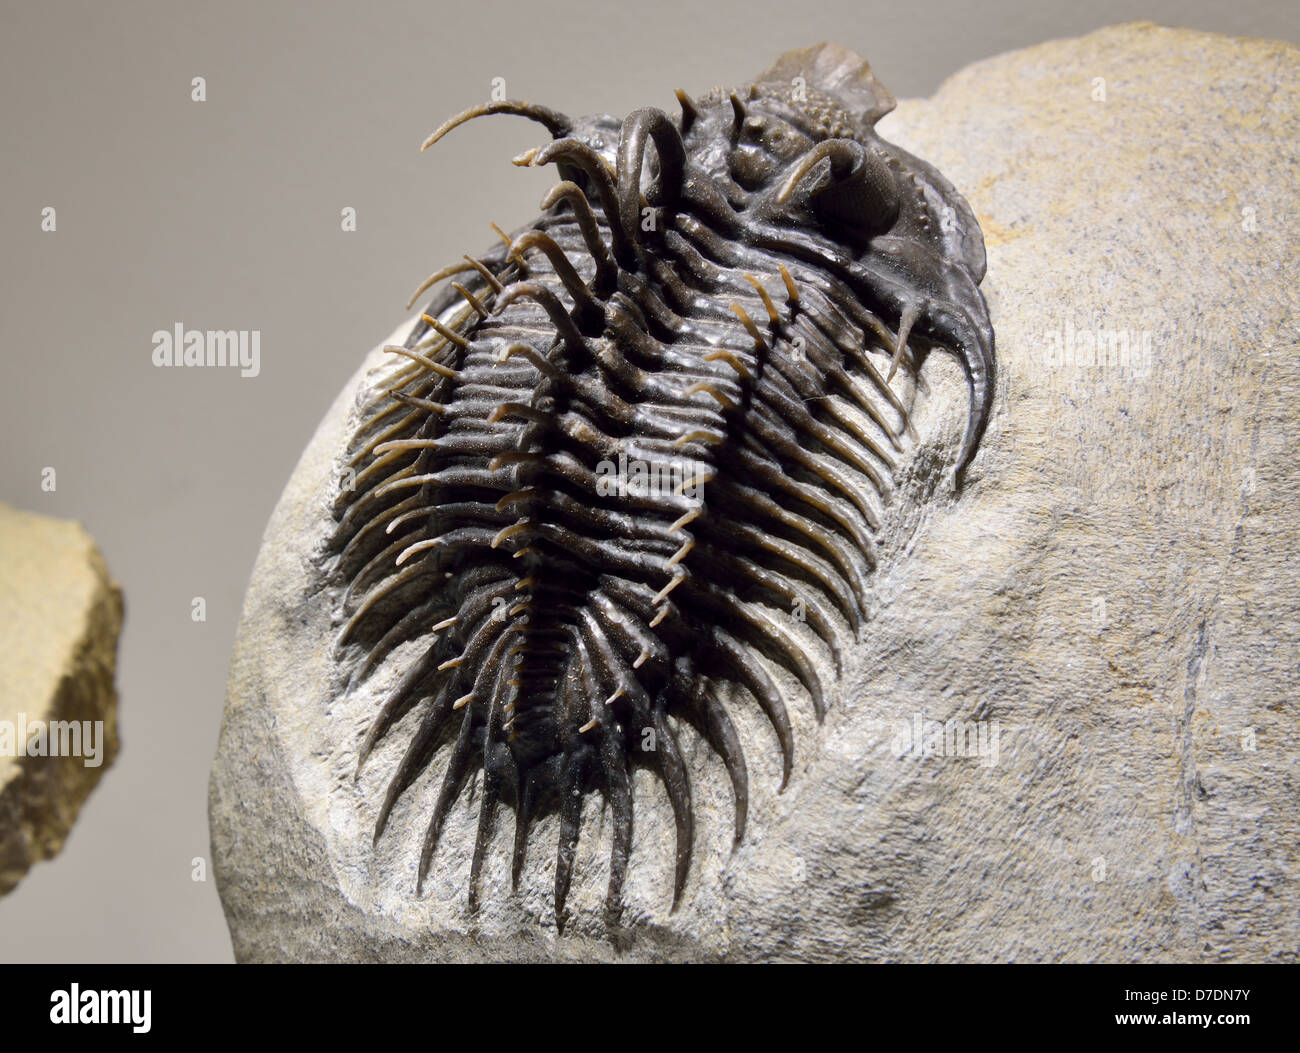 Fossil trilobite Comura with intrigued spines. Devonian age. - Stock Image